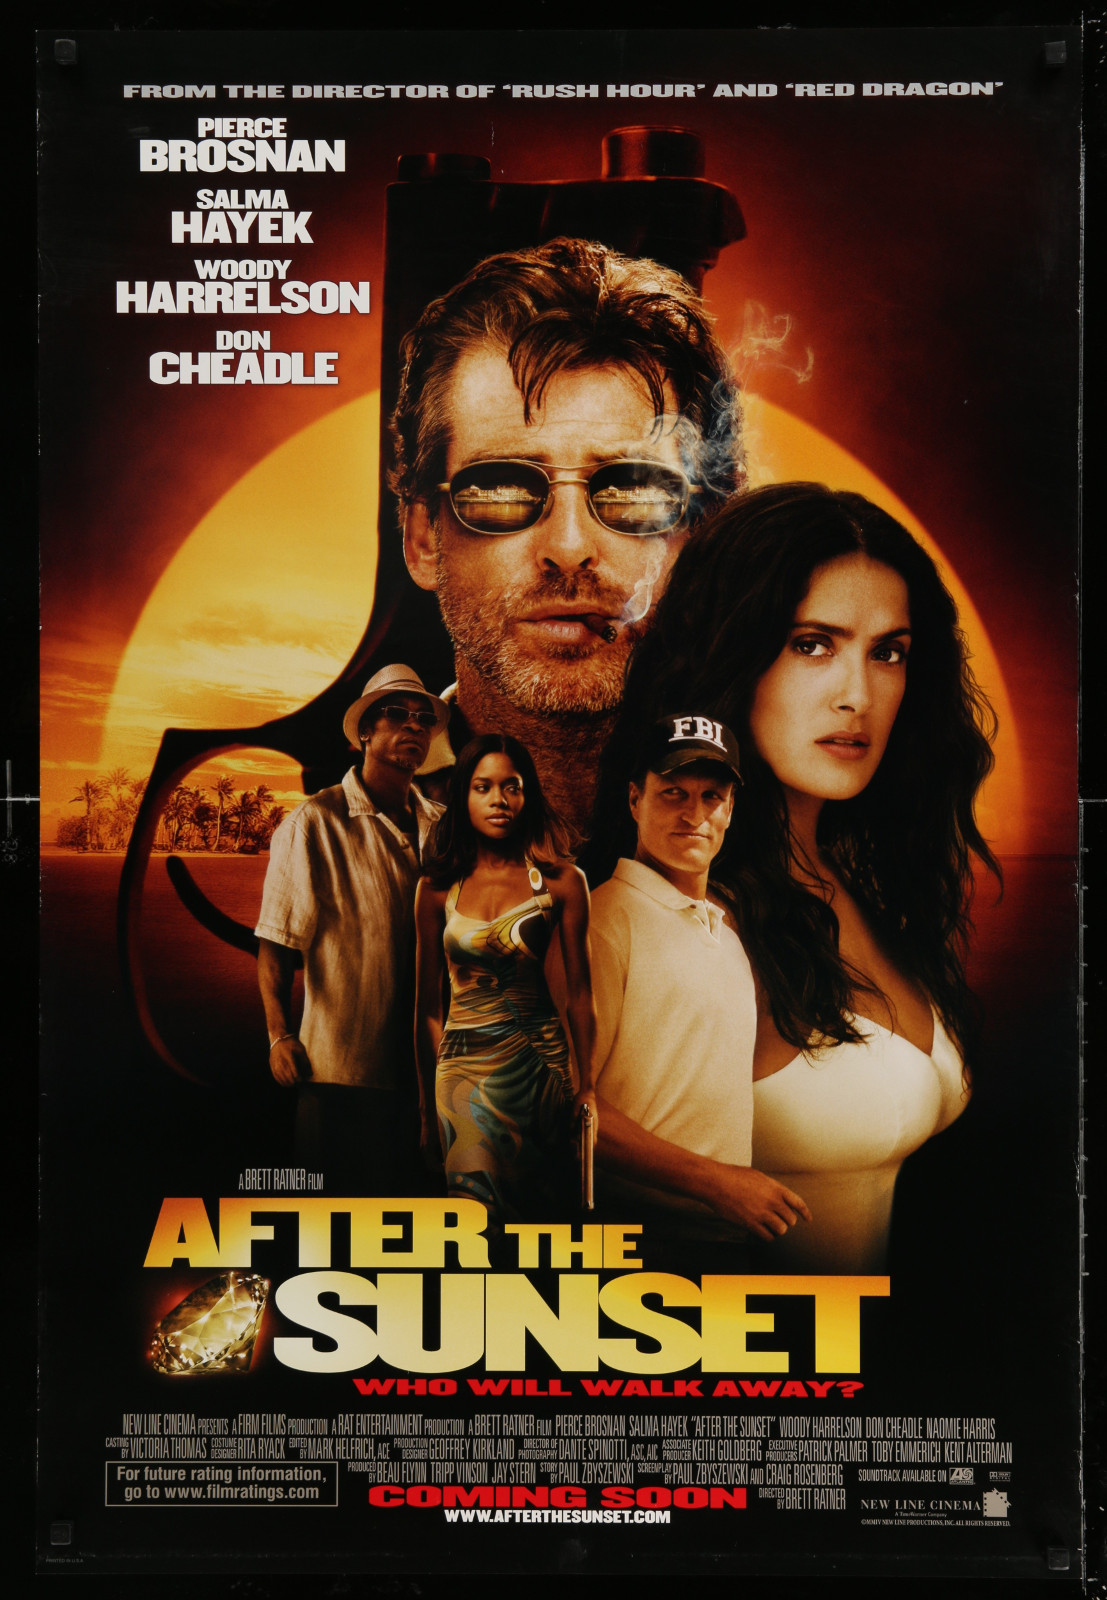 After The Sunset 2A471 A Part Of A Lot 15 Unfolded Double-Sided 27X40 Mostly Family One-Sheets '00S Great Movie Images!